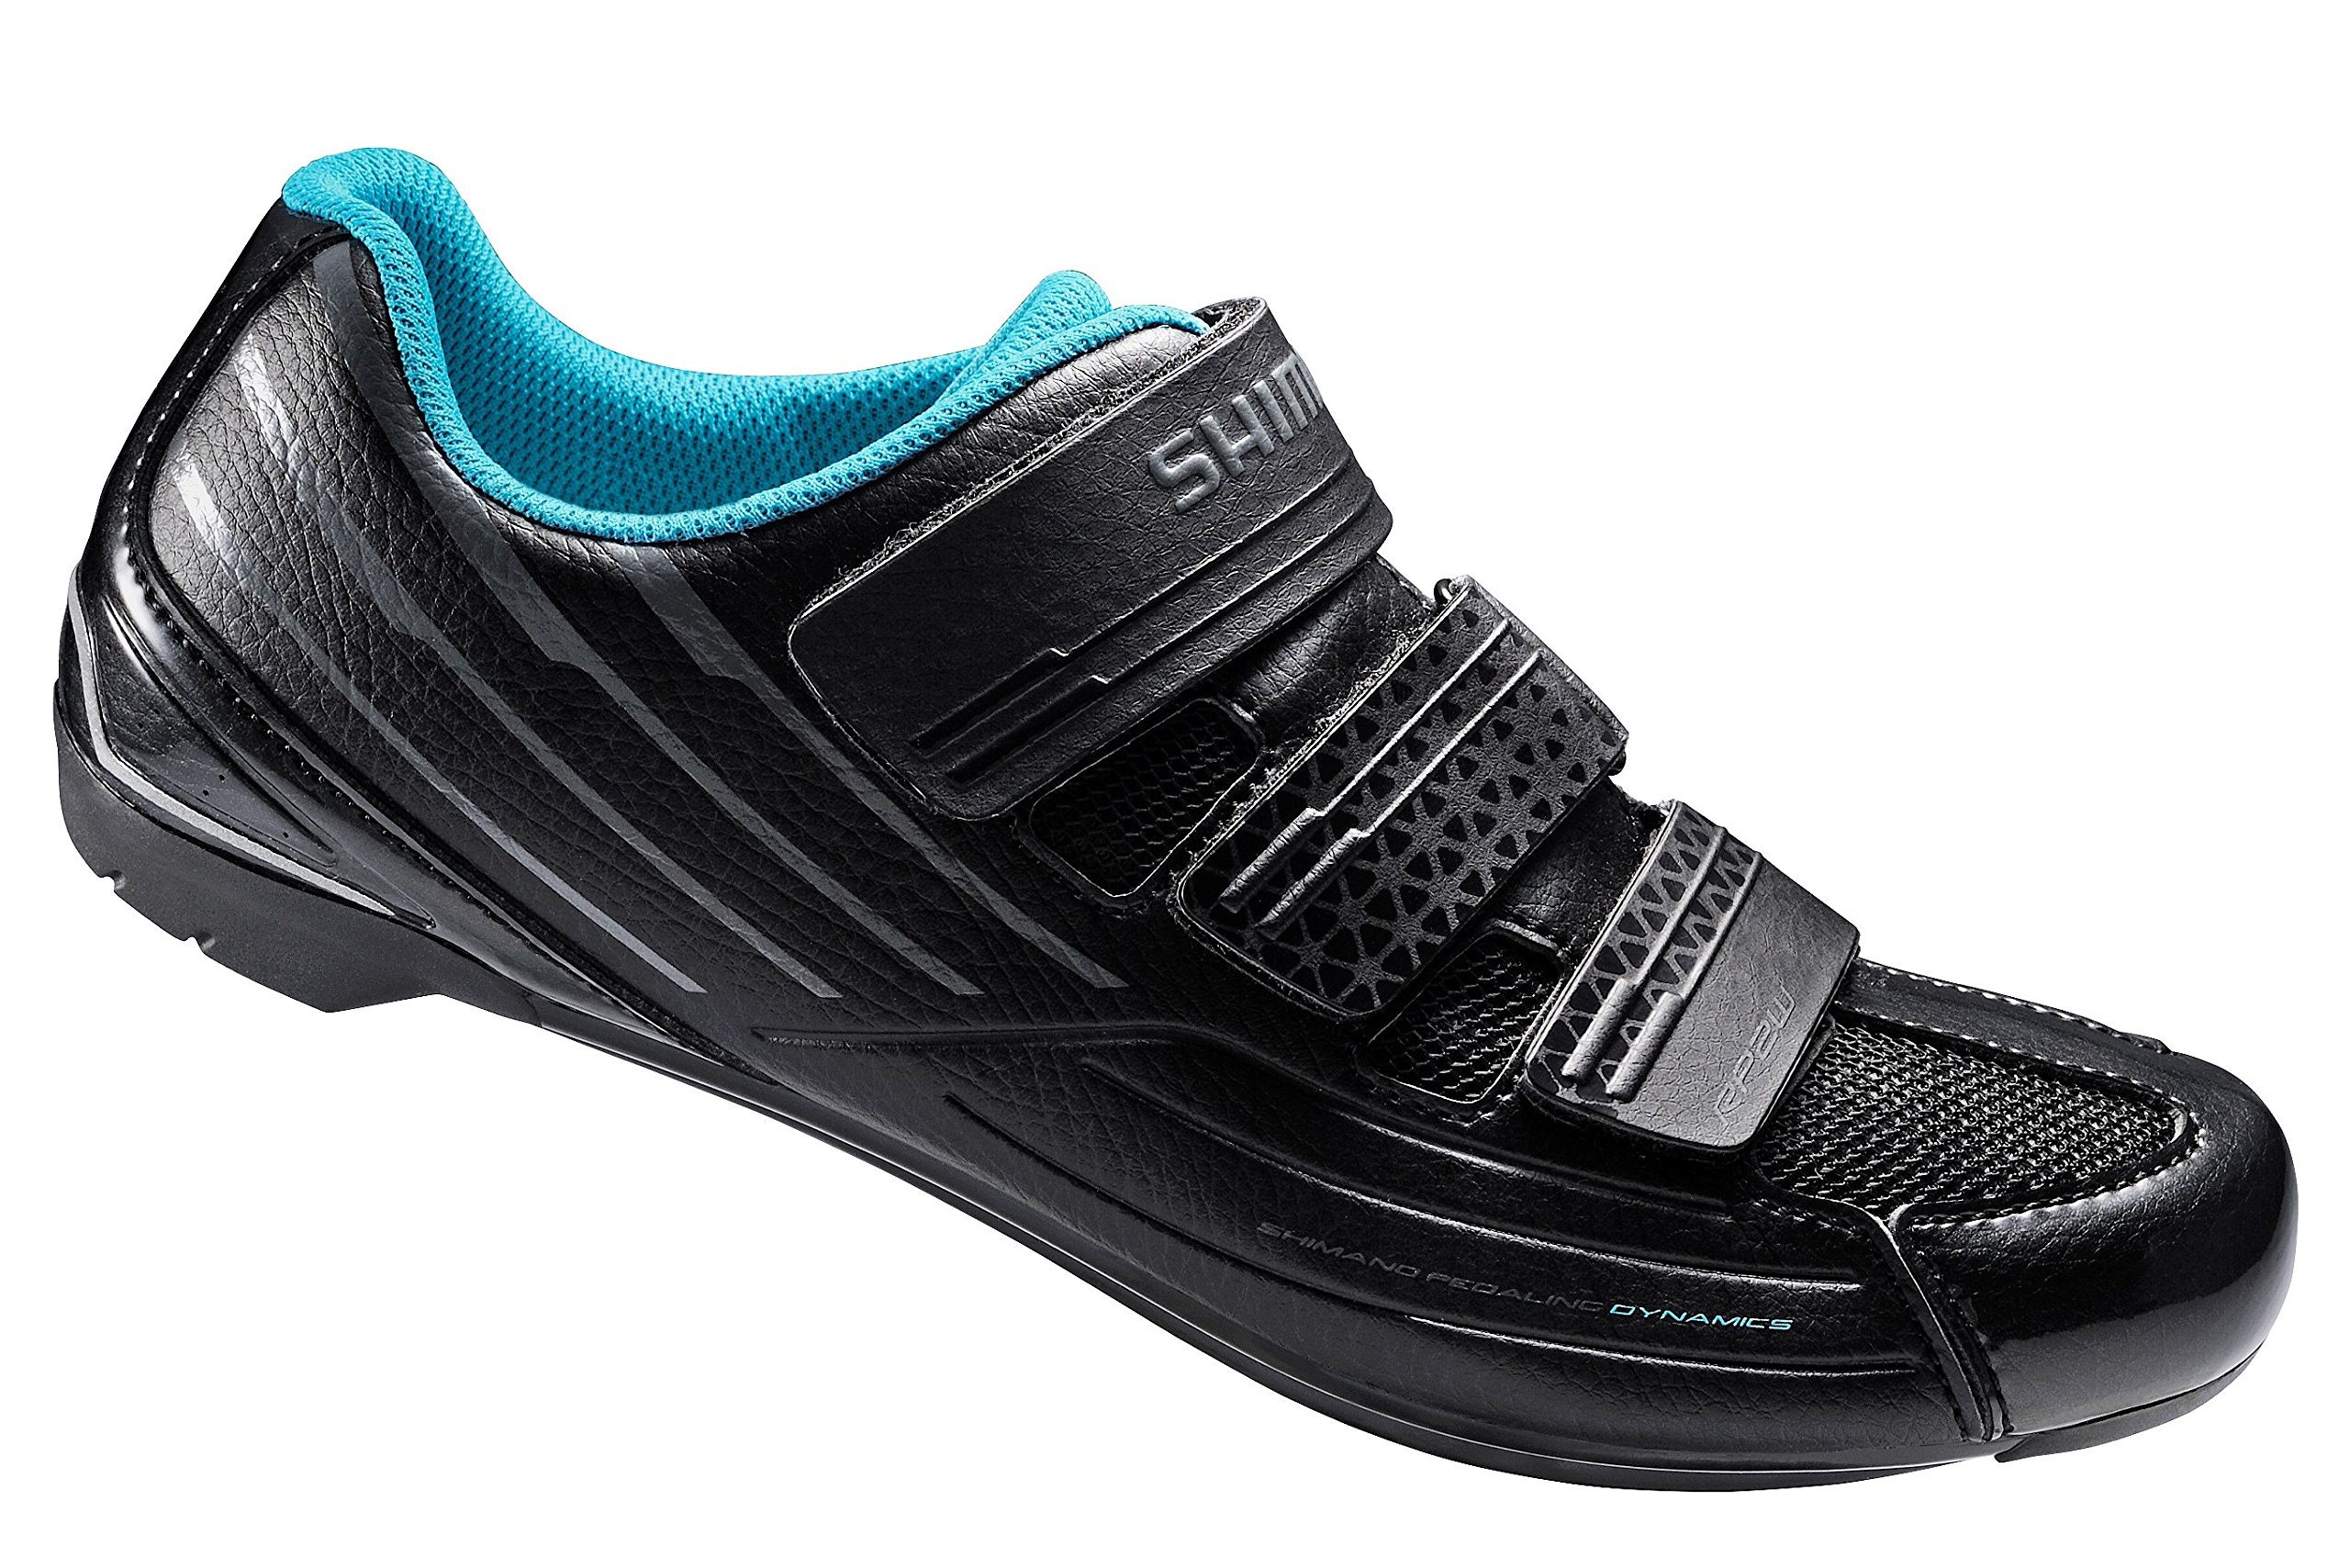 Shimano SH-RP2 Women's Touring Road Cycling Synthetic Leather Shoes, Black, 39